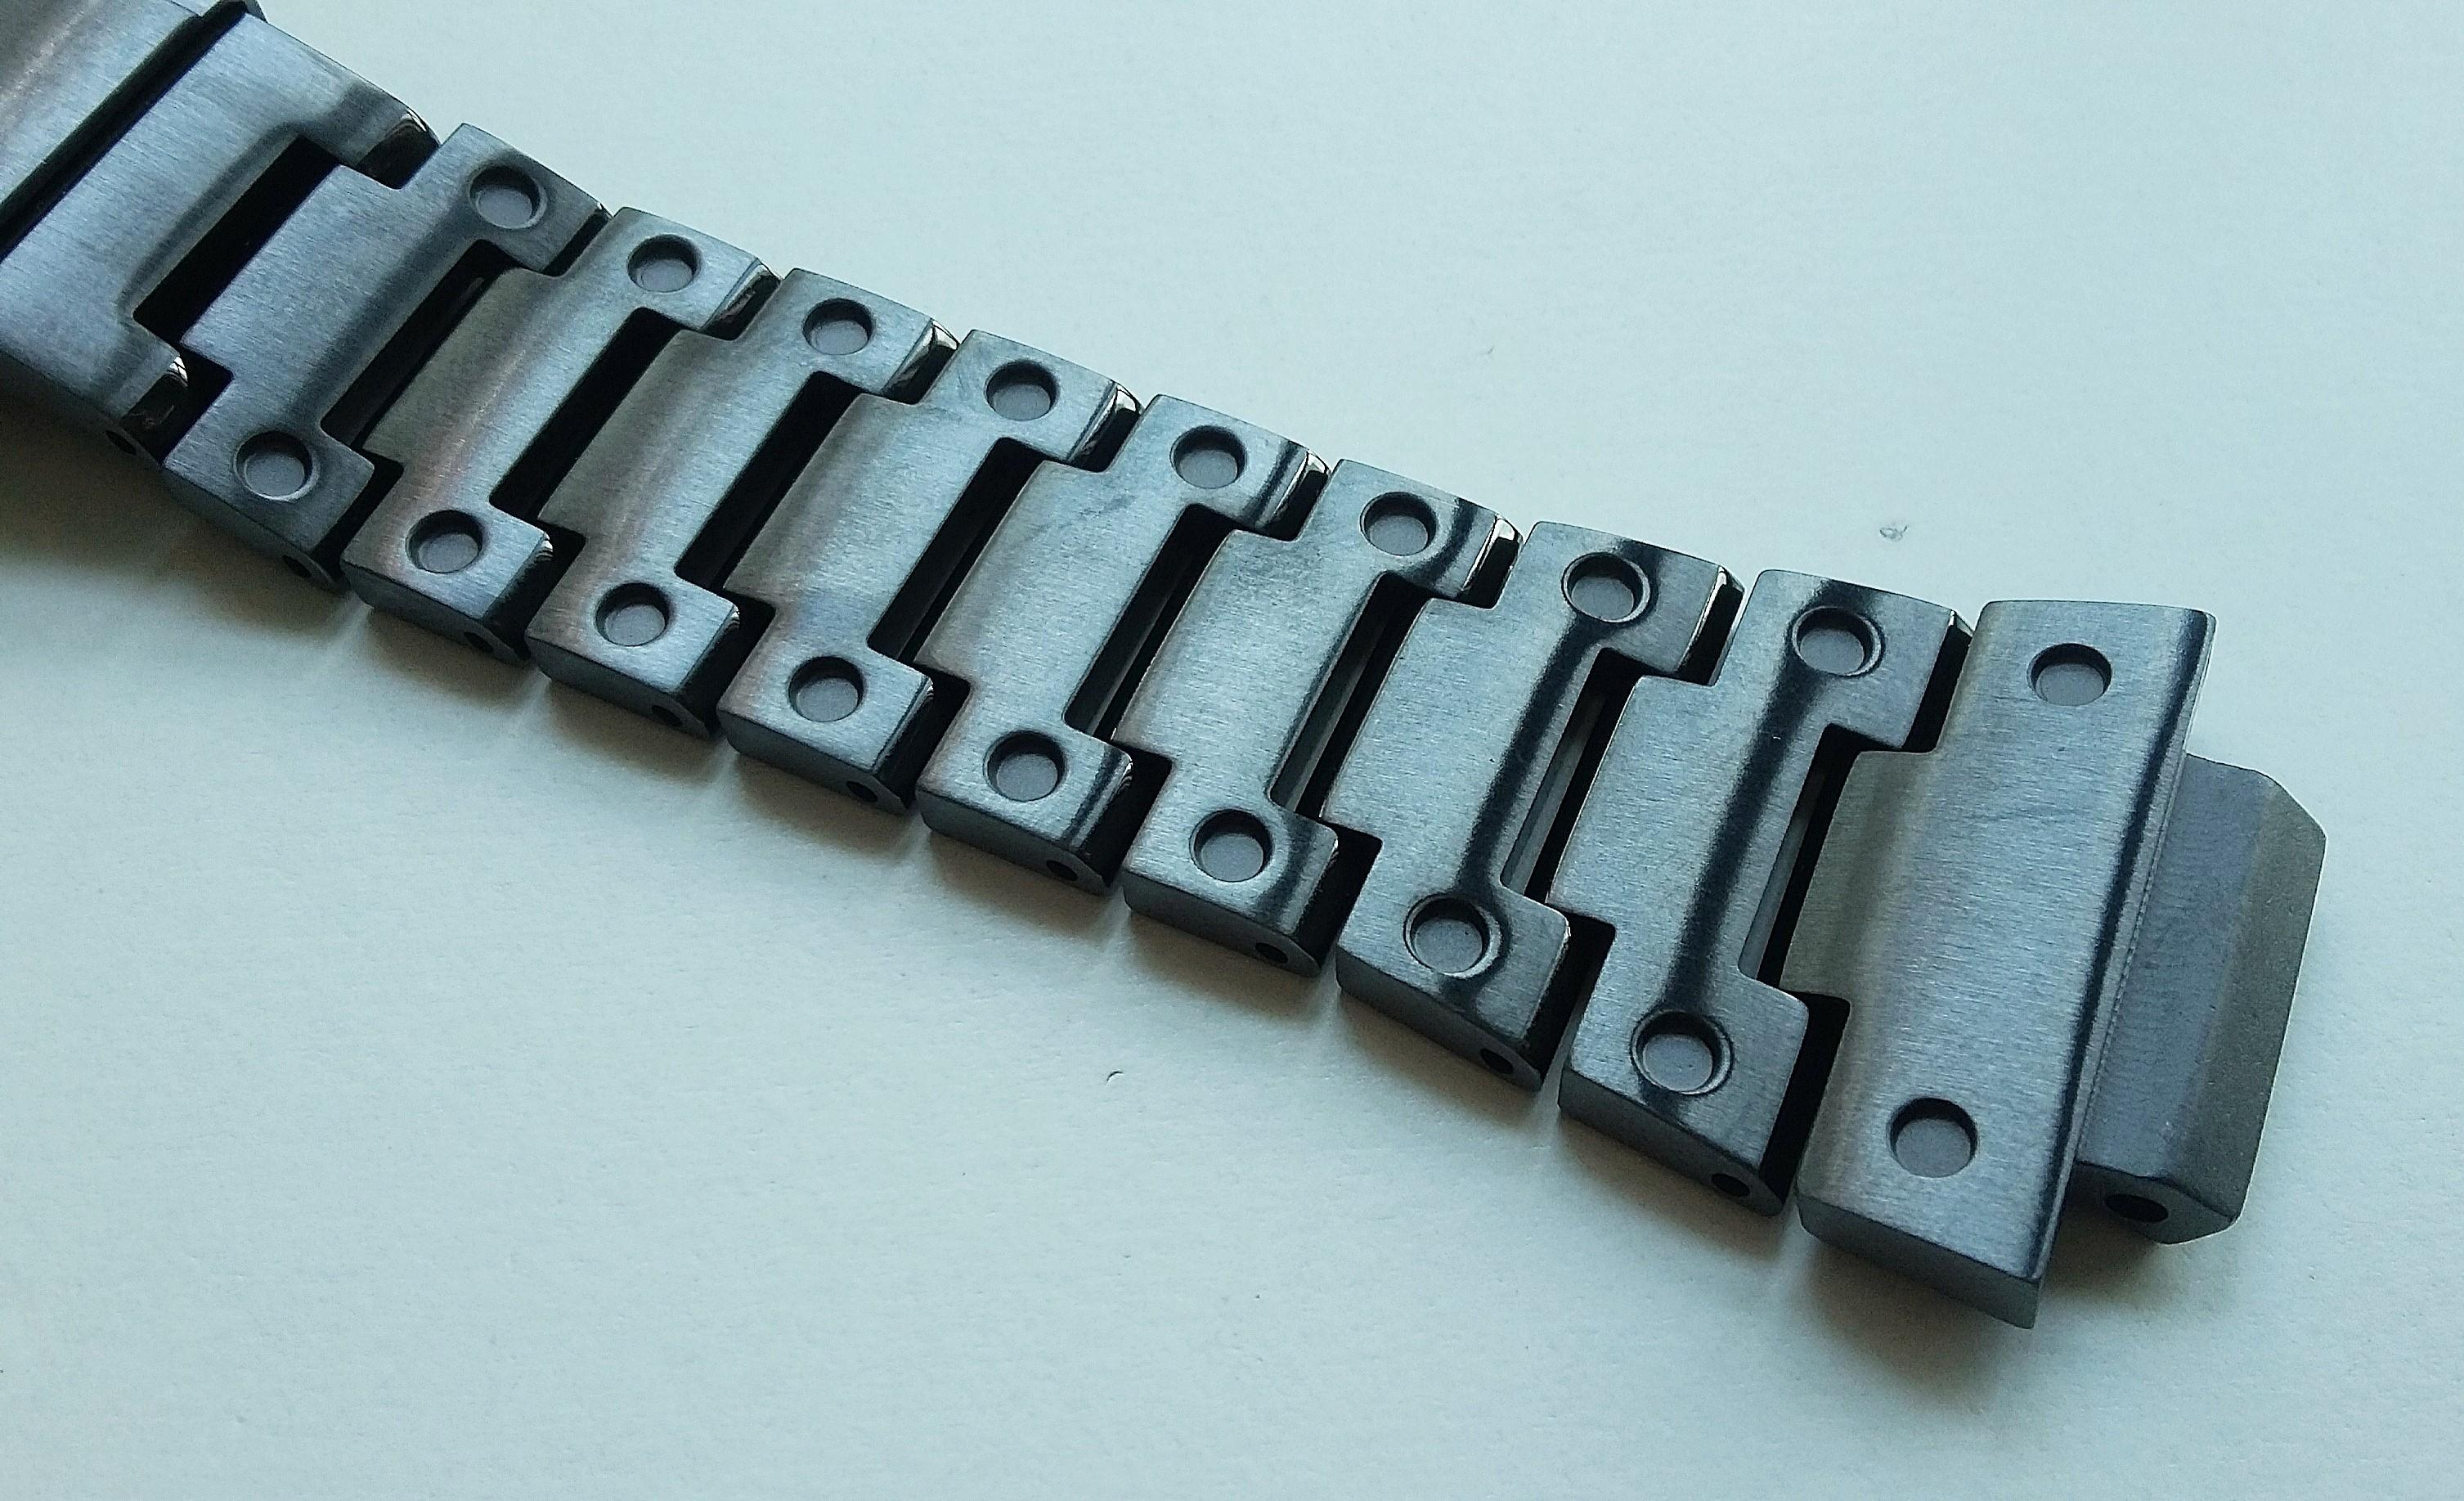 CNC MACHINED DLC SLATE GREY 316L STAINLESS STEEL BEZEL CASE AND BRACELET FOR CASIO G-SHOCK DW5610, G 5600E, GW-M5610, GW-M5600, GLX-5600, GLS-5600, GW-M5630, GW-S5600, DW-D5600(PRICE INCLUDE M0DIFICATION)